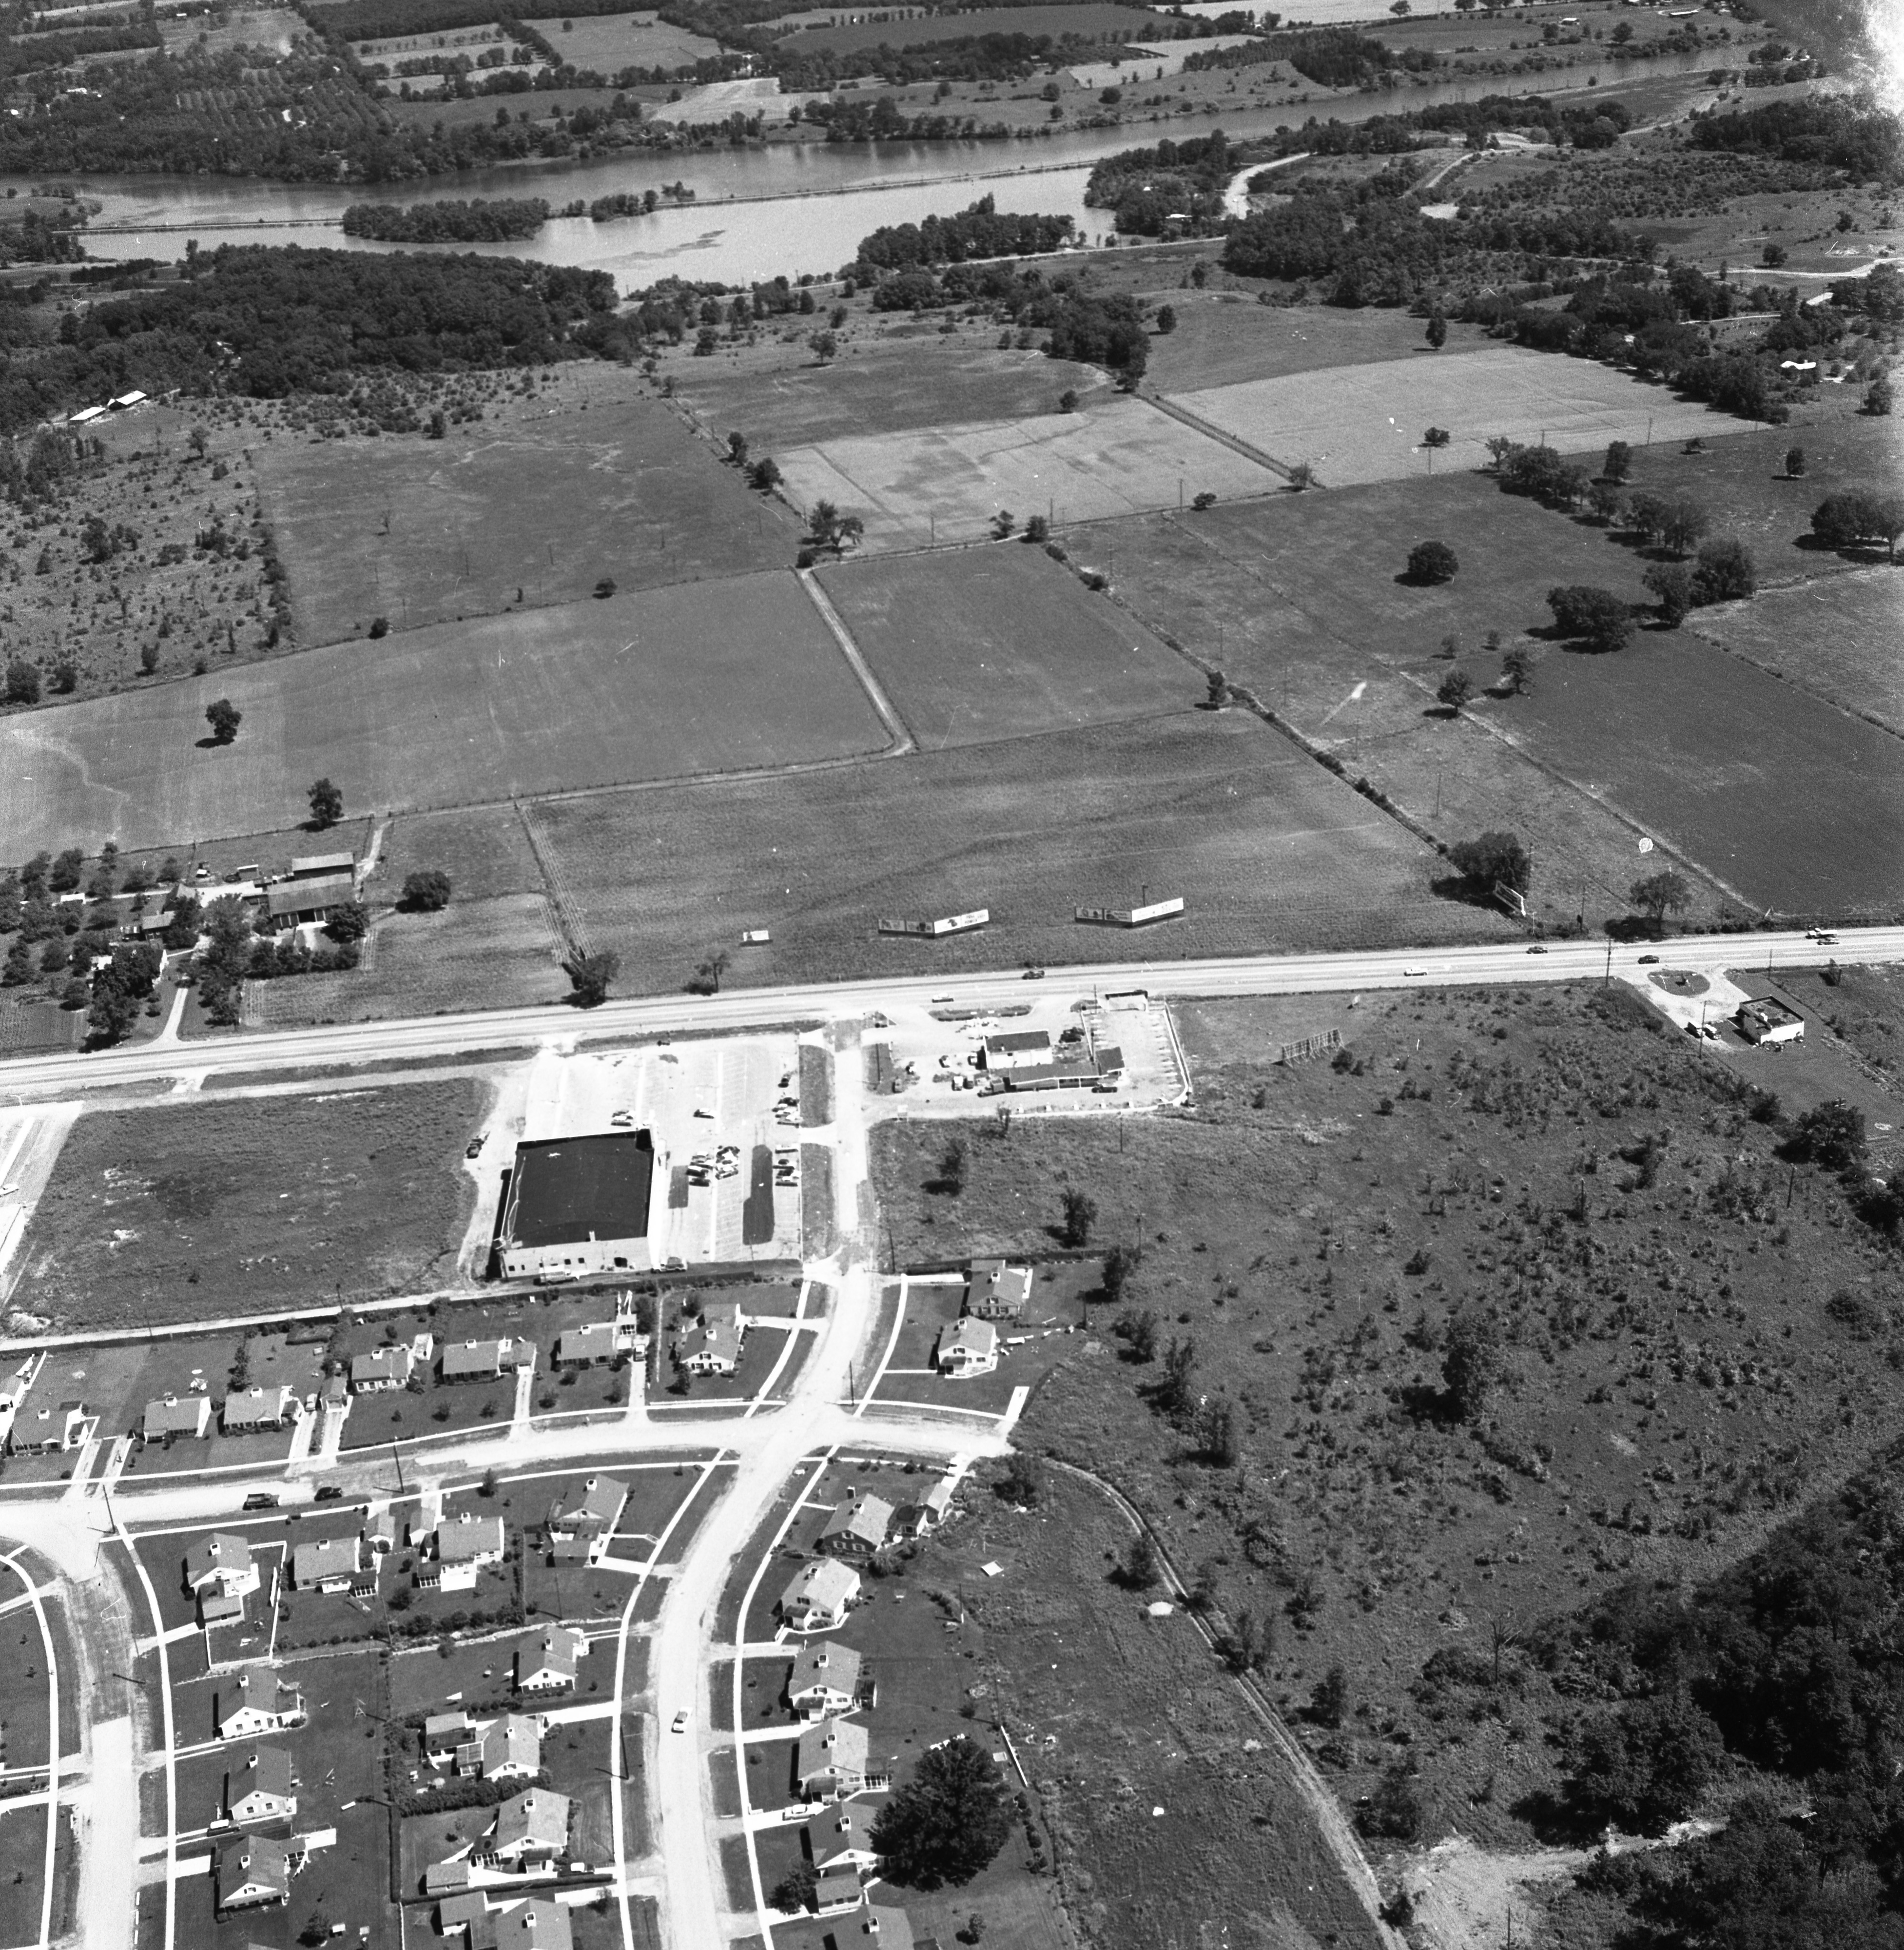 Aerial of Proposed Arborland Shopping Center Site, August 1957 image